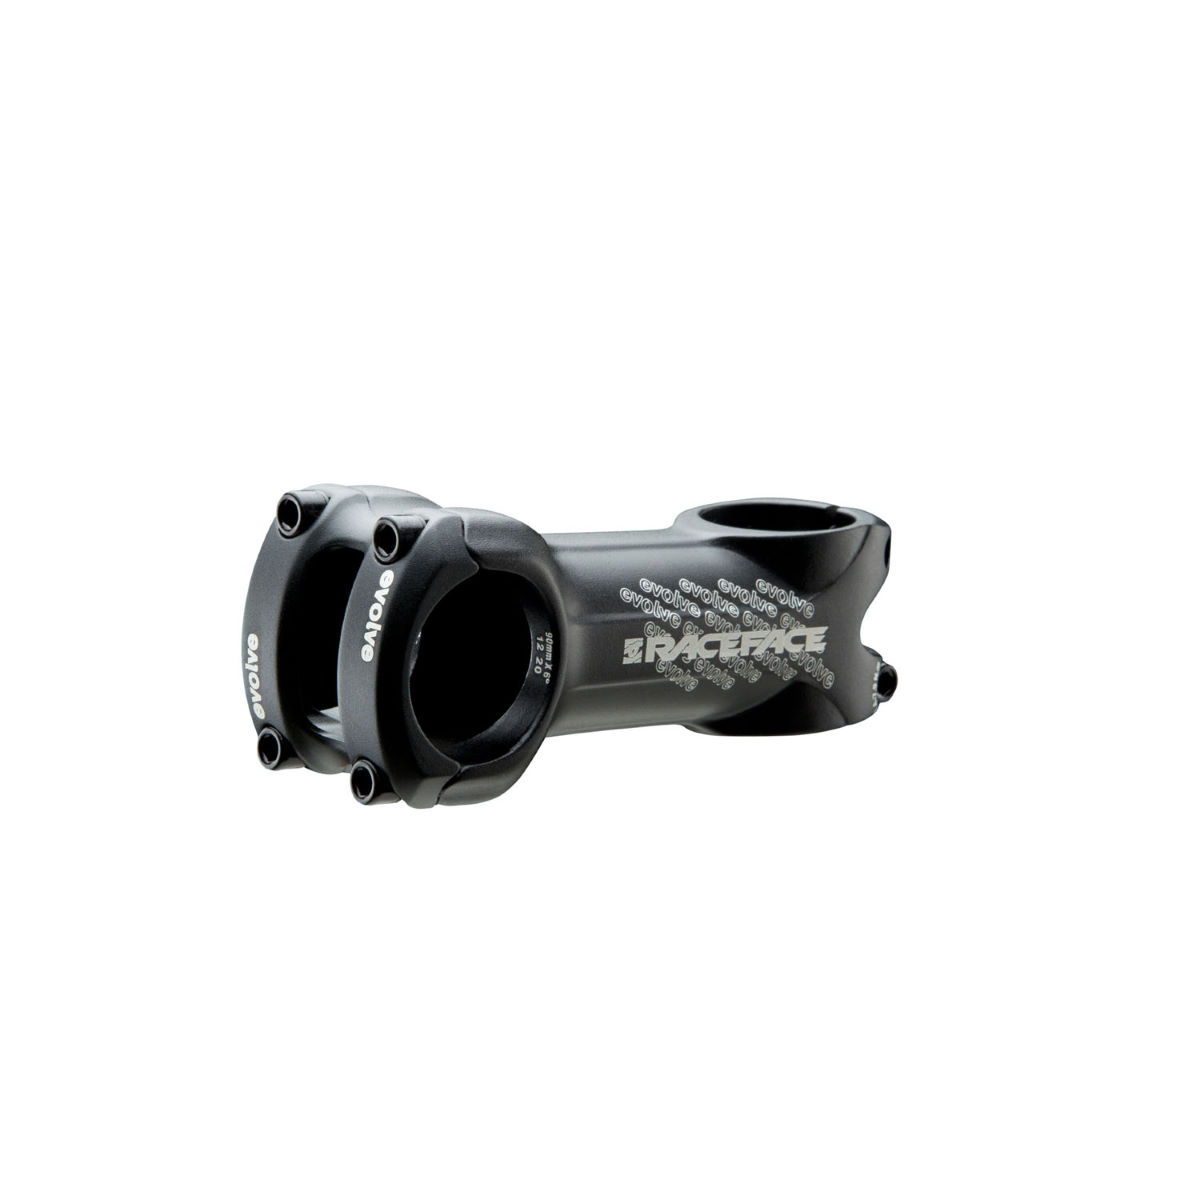 Potence VTT Race Face Evolve - 090mm x 31.8mm Noir Potences